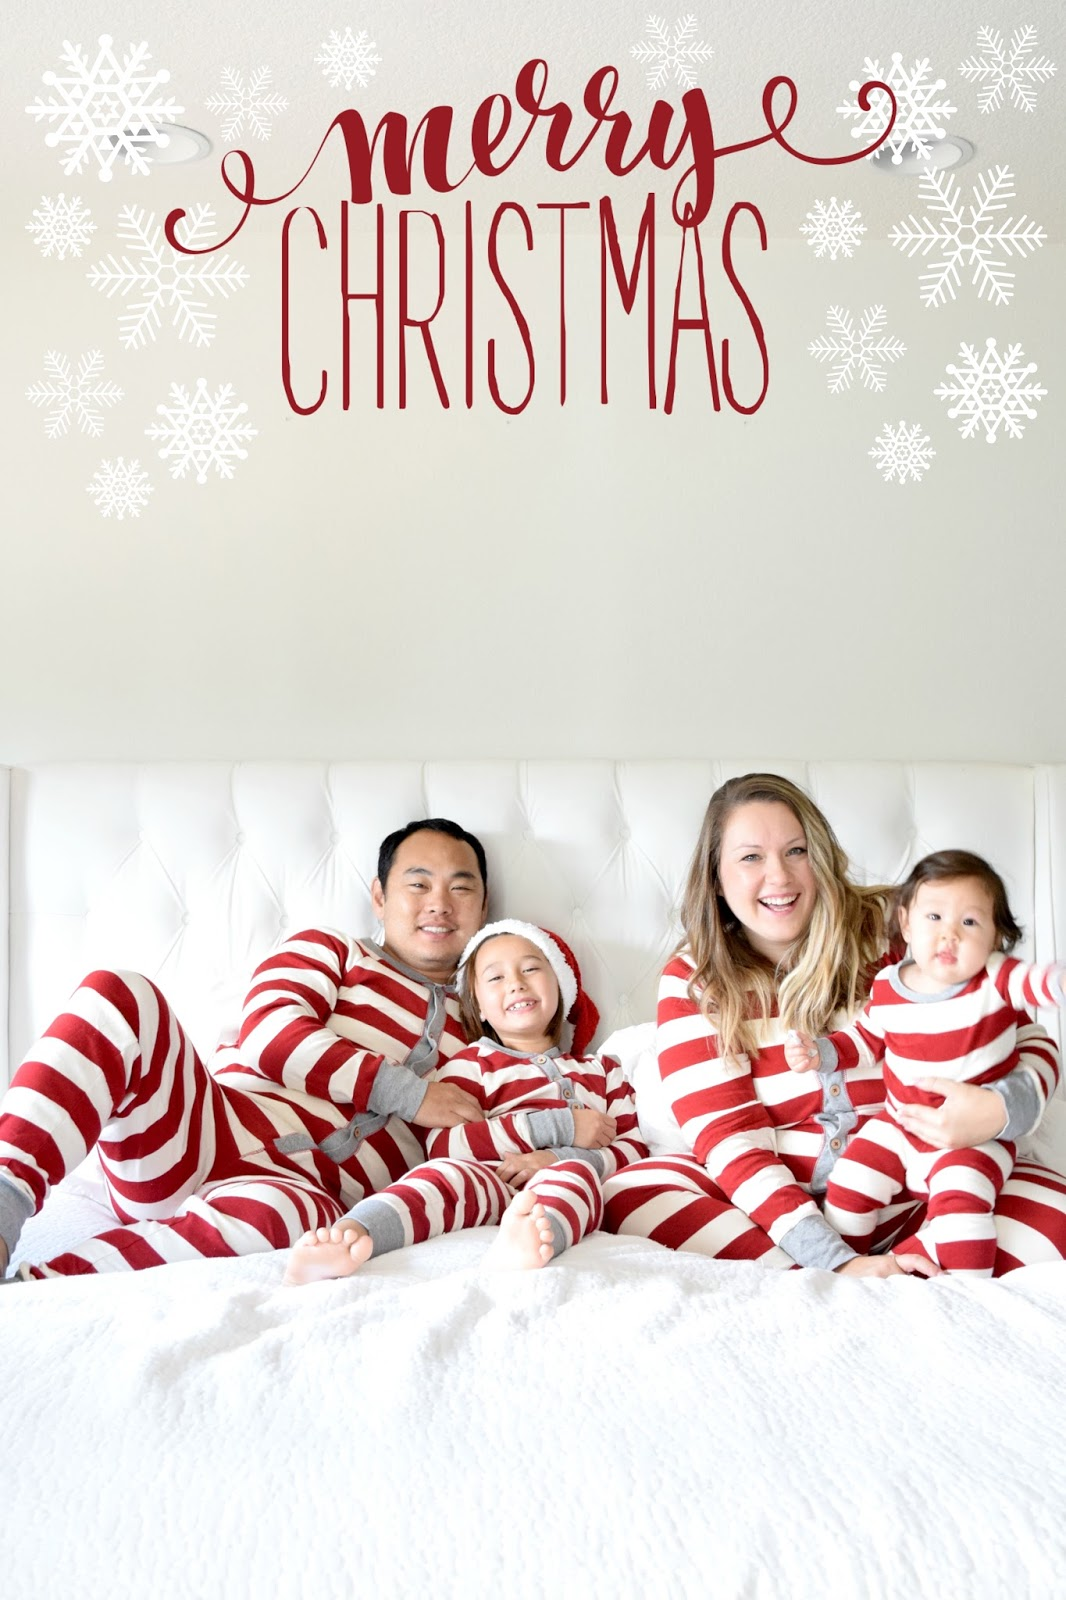 Diy Family Photo Display Click On Image To See More Home: A Very Merry Christmas + Tips For DIY Family Photos